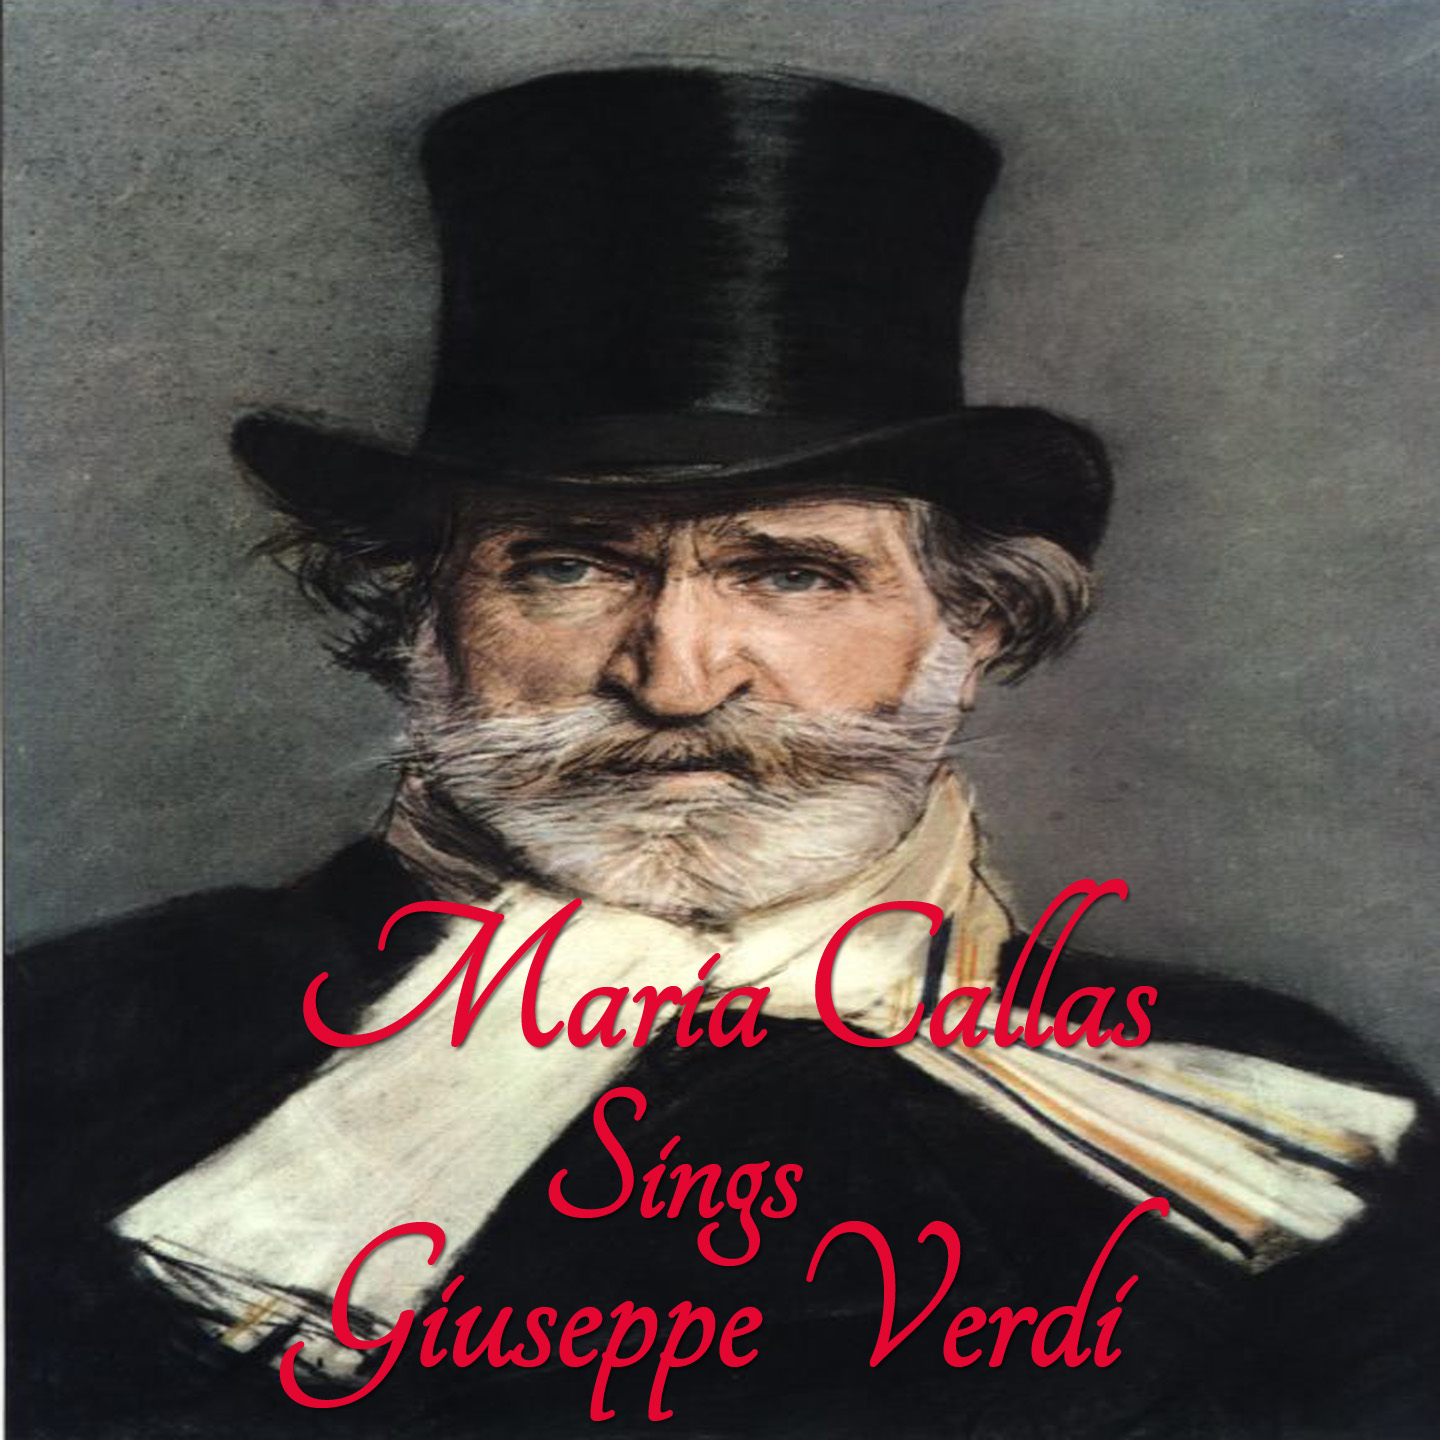 1-Maria Callas Sings Giuseppe Verdi - Tacea la notte placida, Siciliana, And Other 5 Hits